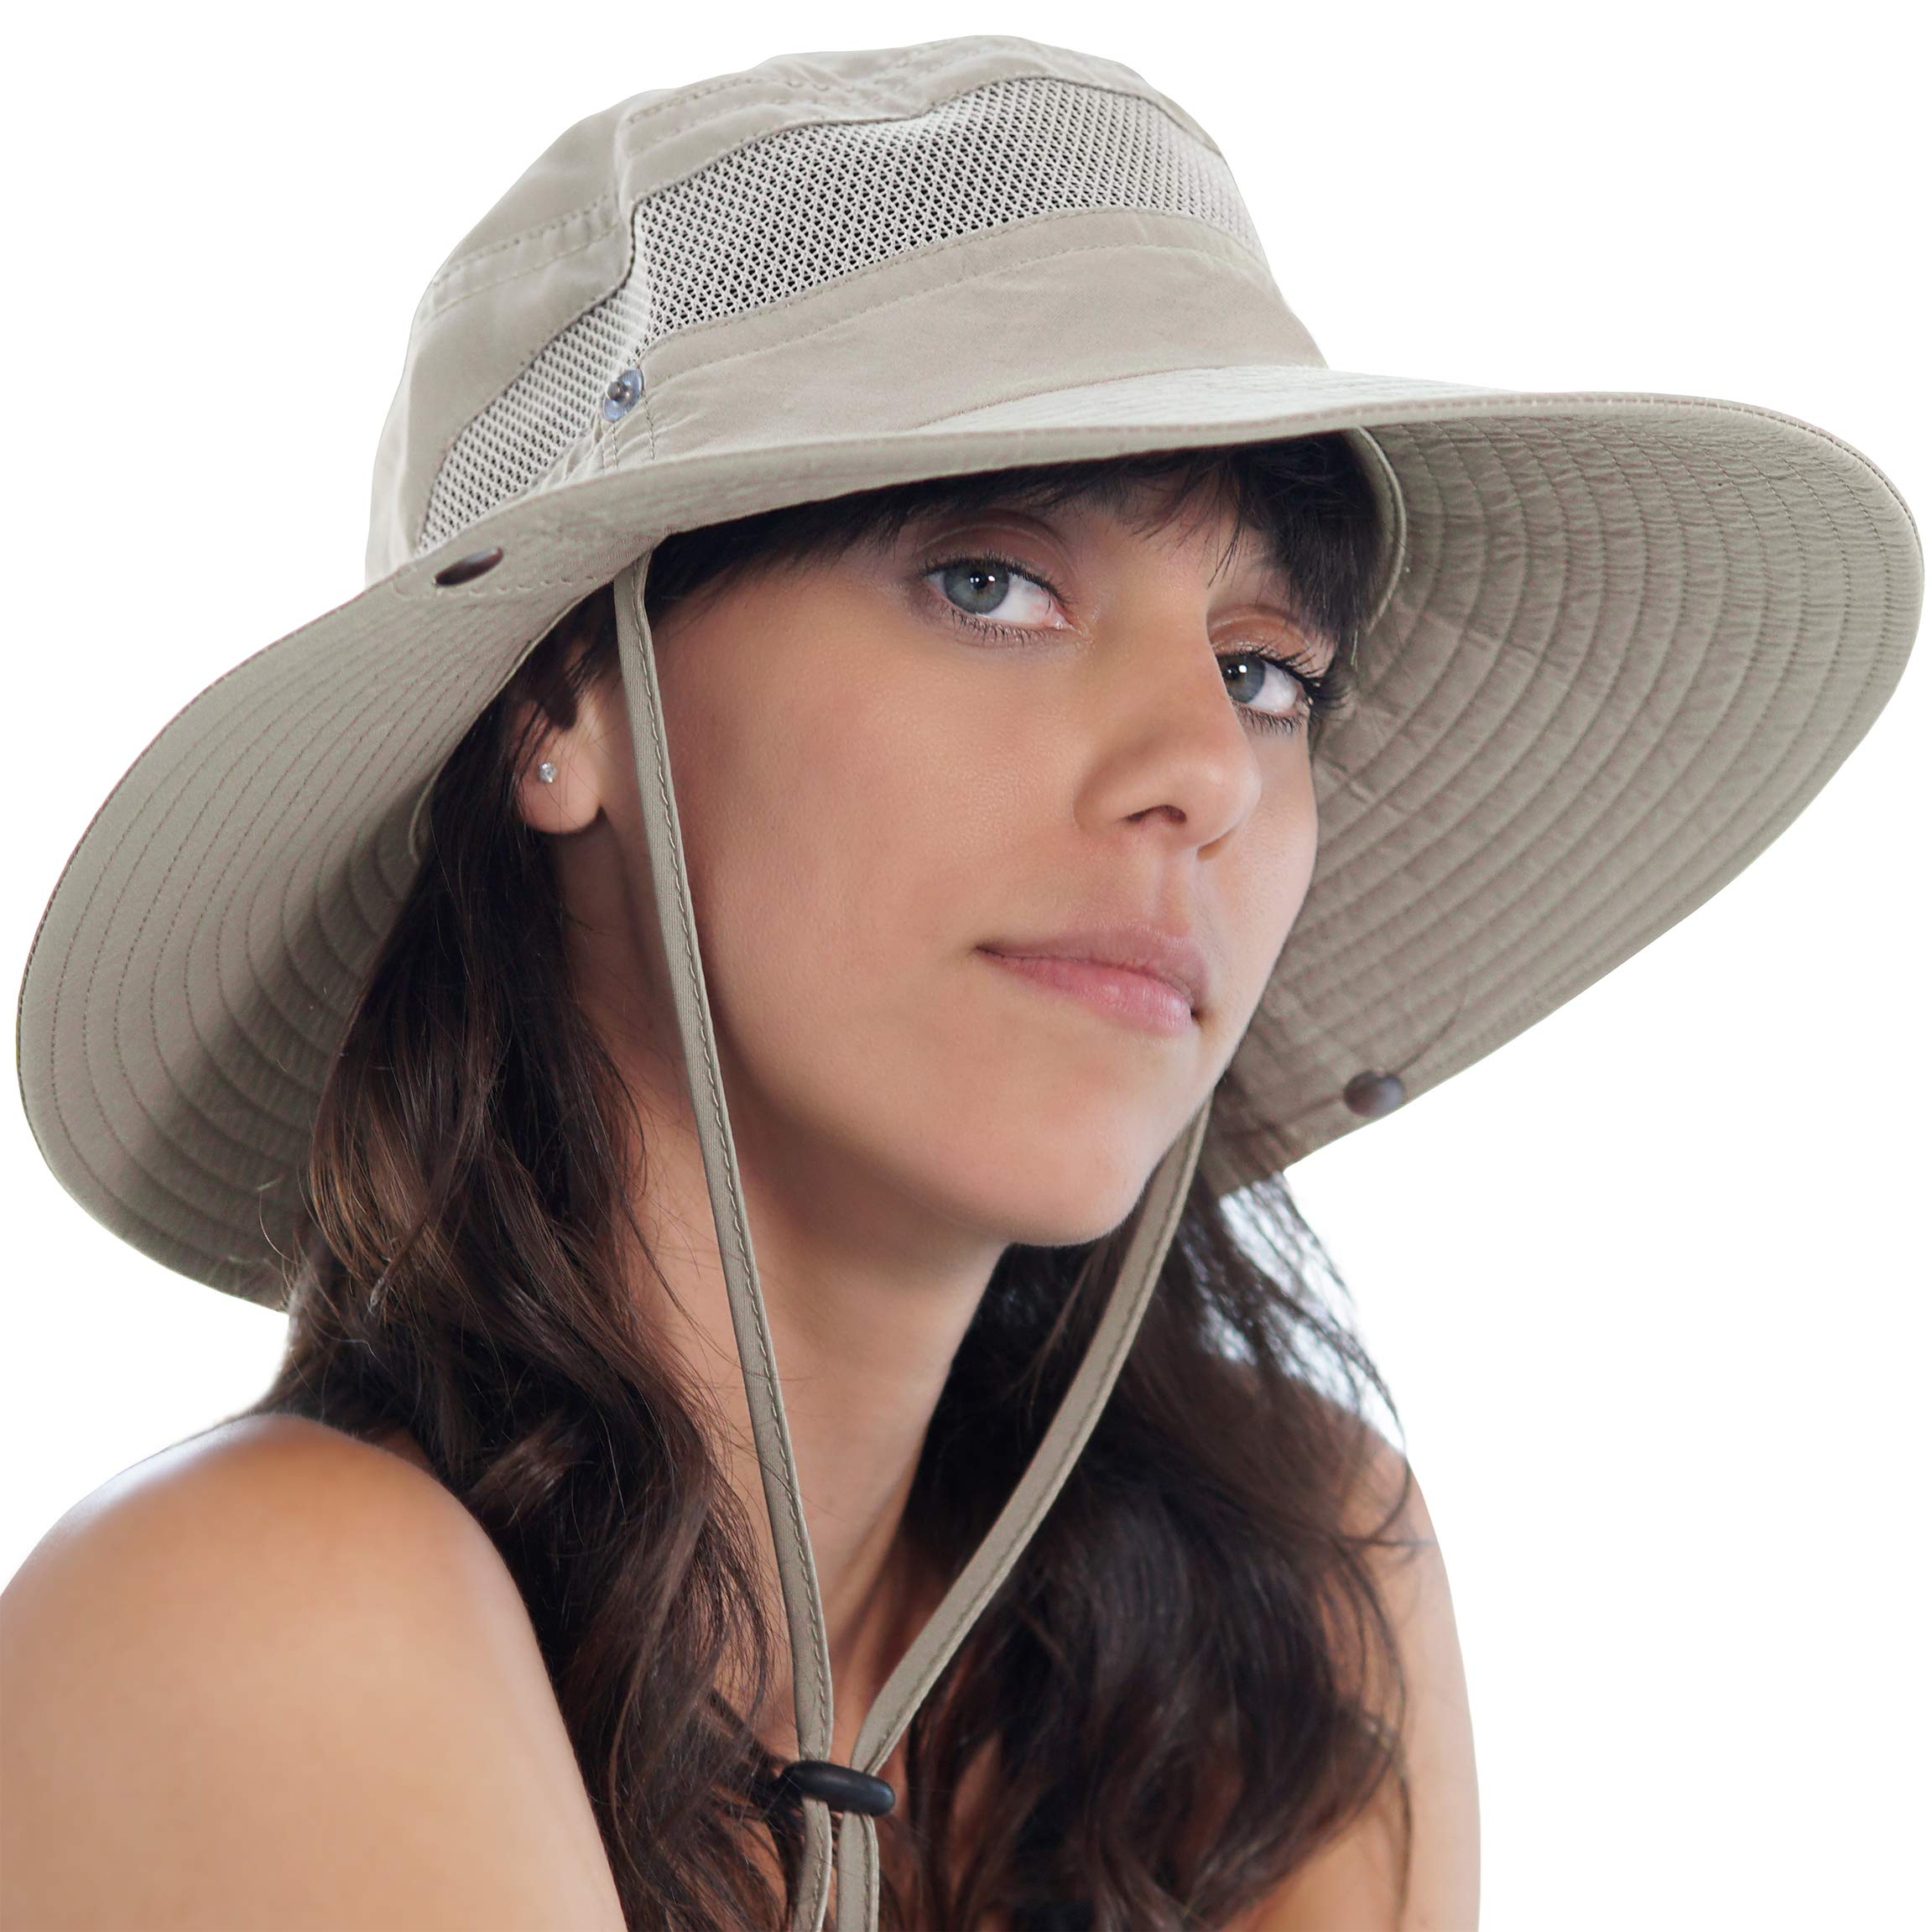 GearTOP Sun Hats for Women and Men | This Summer Cap is Your Best Choice for Sun Protection (Beige Fishing Hat) by GearTOP (Image #7)